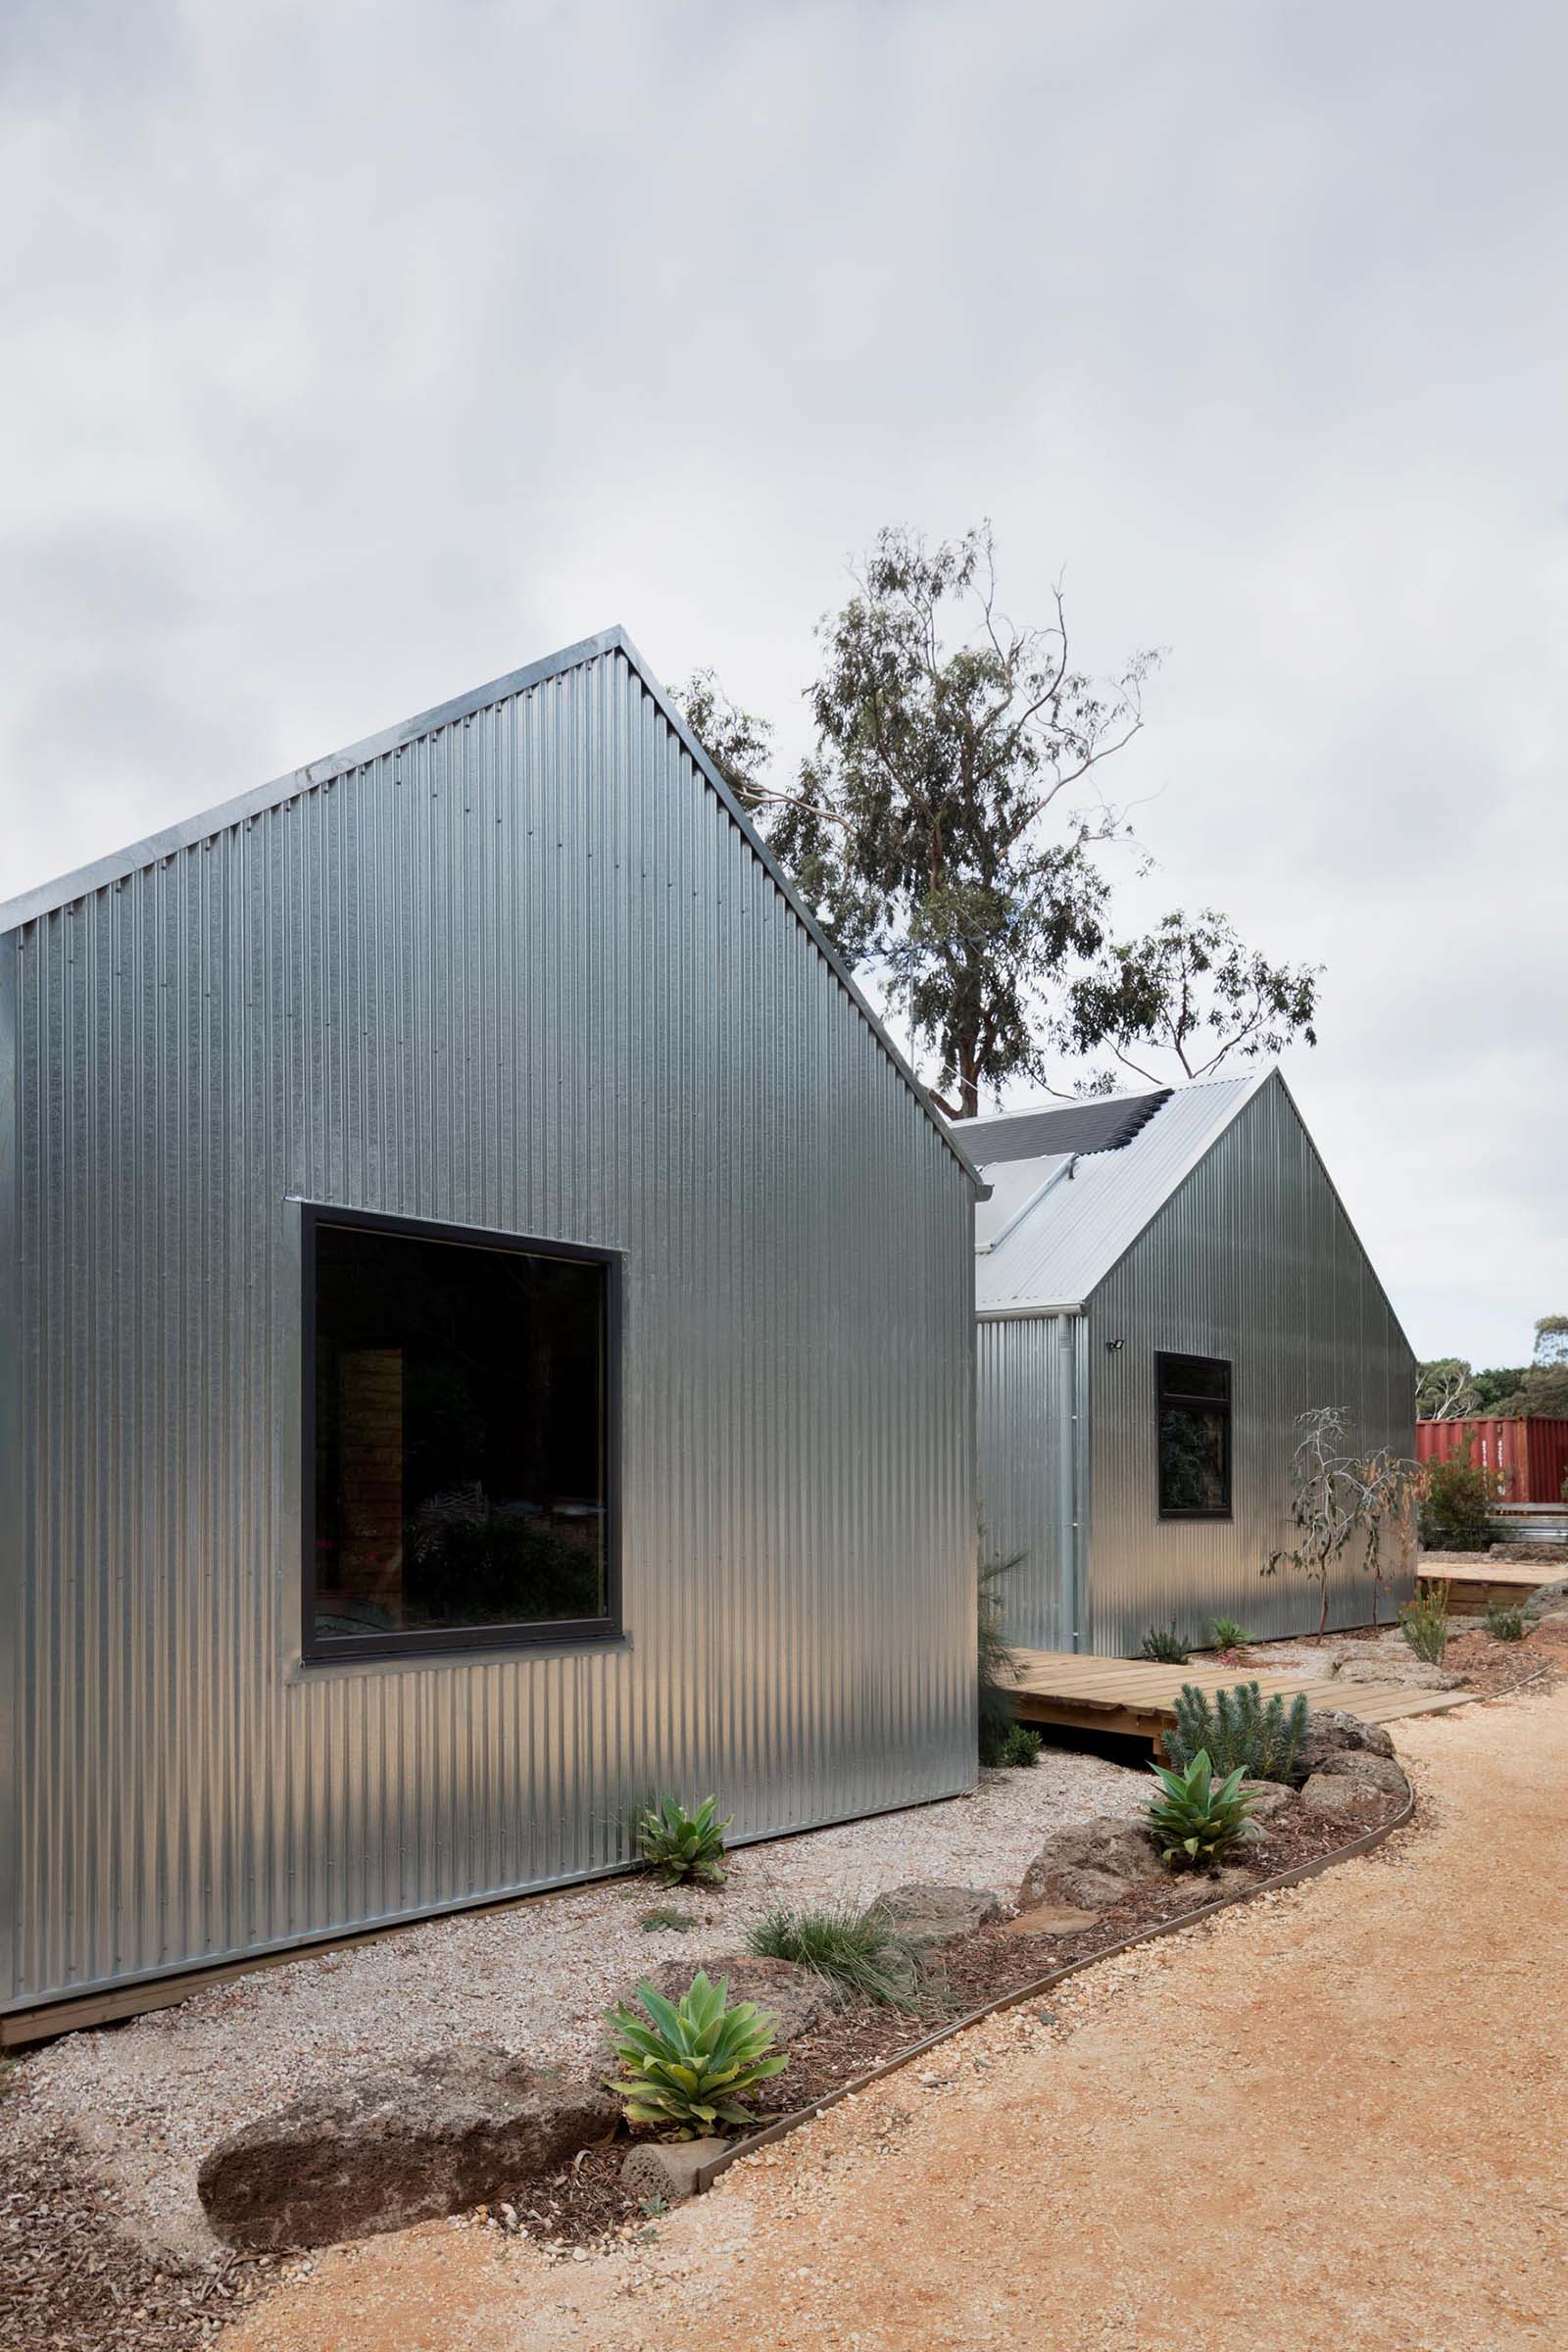 Corrugated steel siding, which covers the entire home, is designed change appearance as it ages, creating a dull finish.